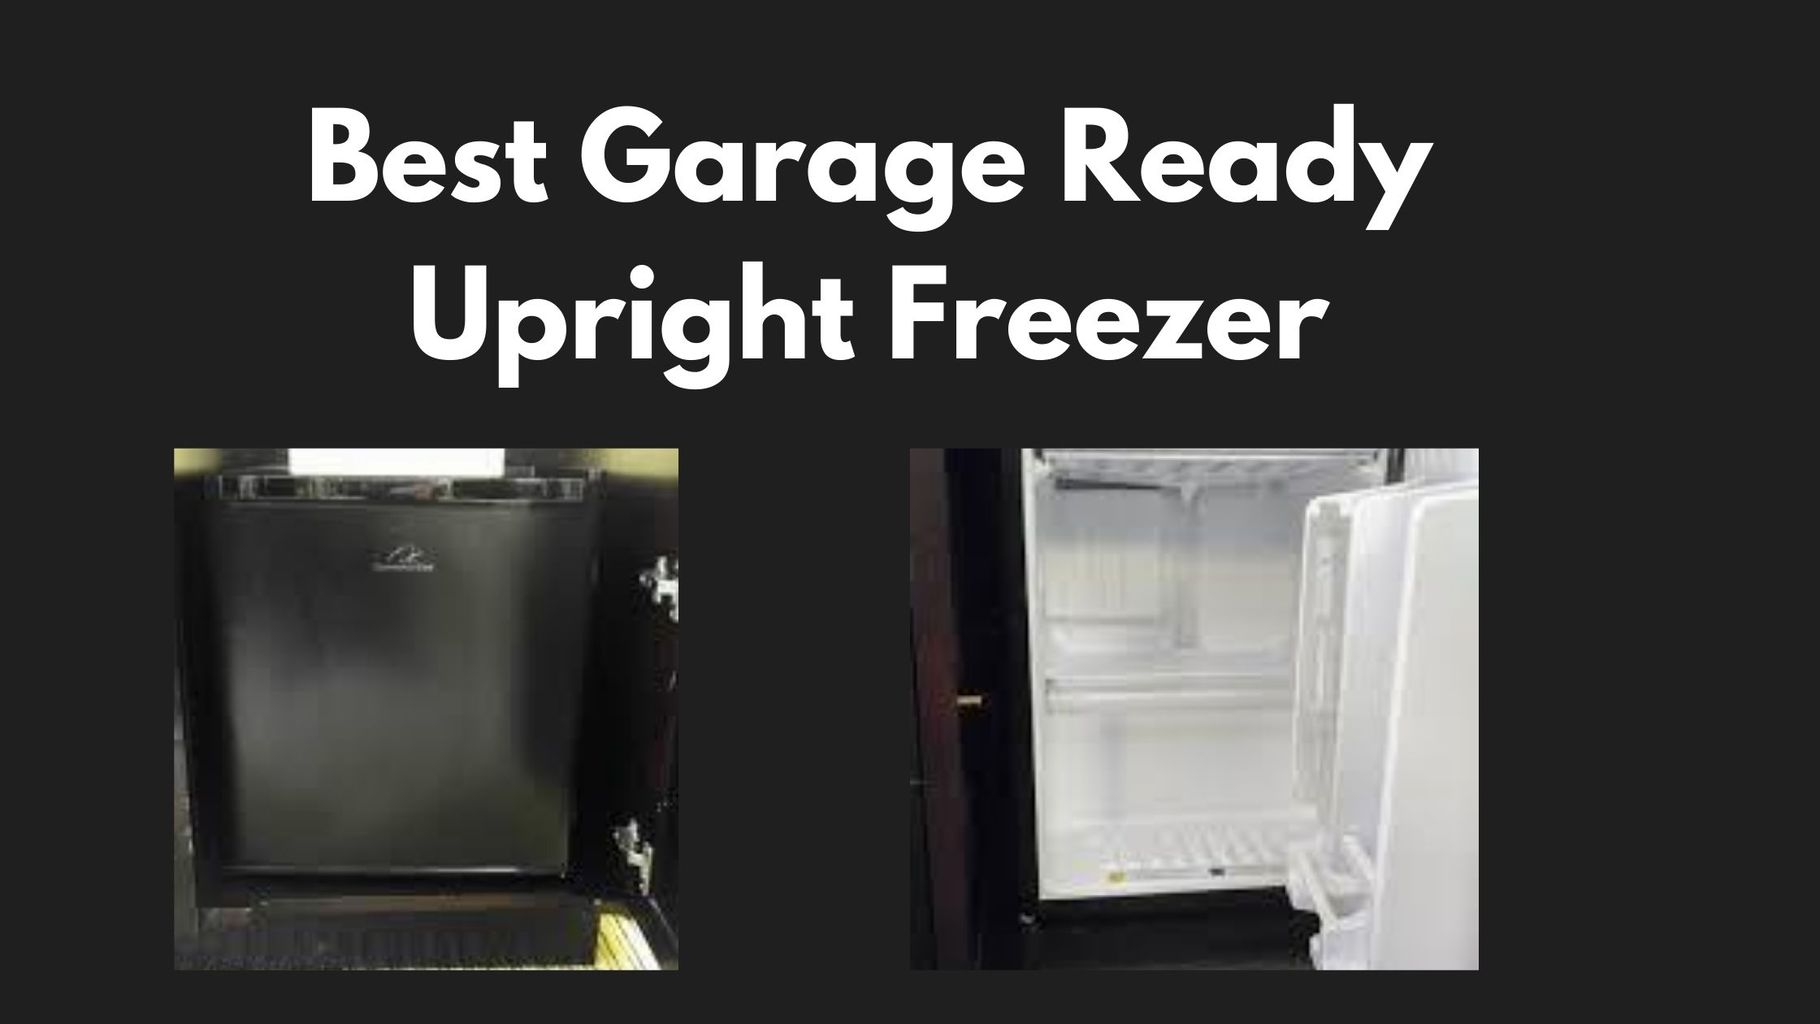 3 Best Garage Ready Upright Freezer - Review and Buyer's Guide